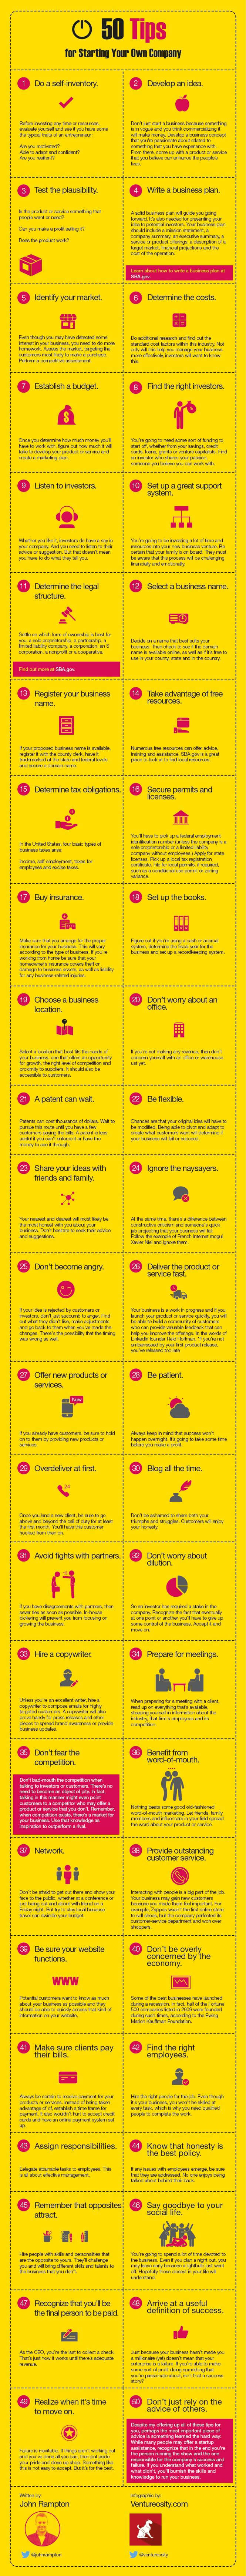 How to Start Your Own Company: 50 tips (infographic) We originally had it with this article: http://ventureosity.com/how-to-start-your-own-company-50-tips-infographic/